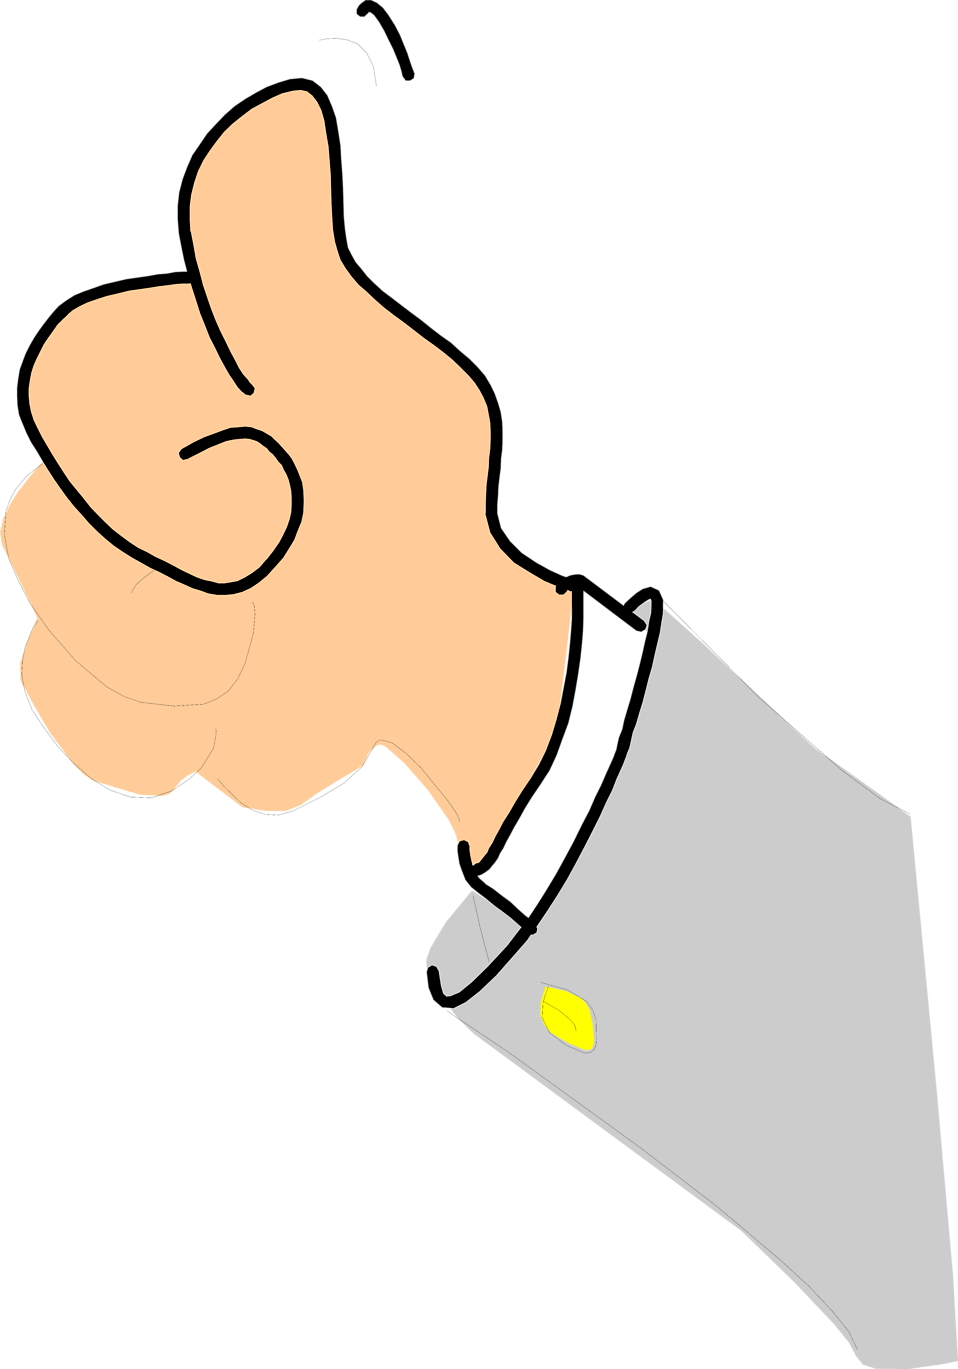 958x1369 Thumbs Up Free Stock Photo Illustration Of A Cartoon Hand